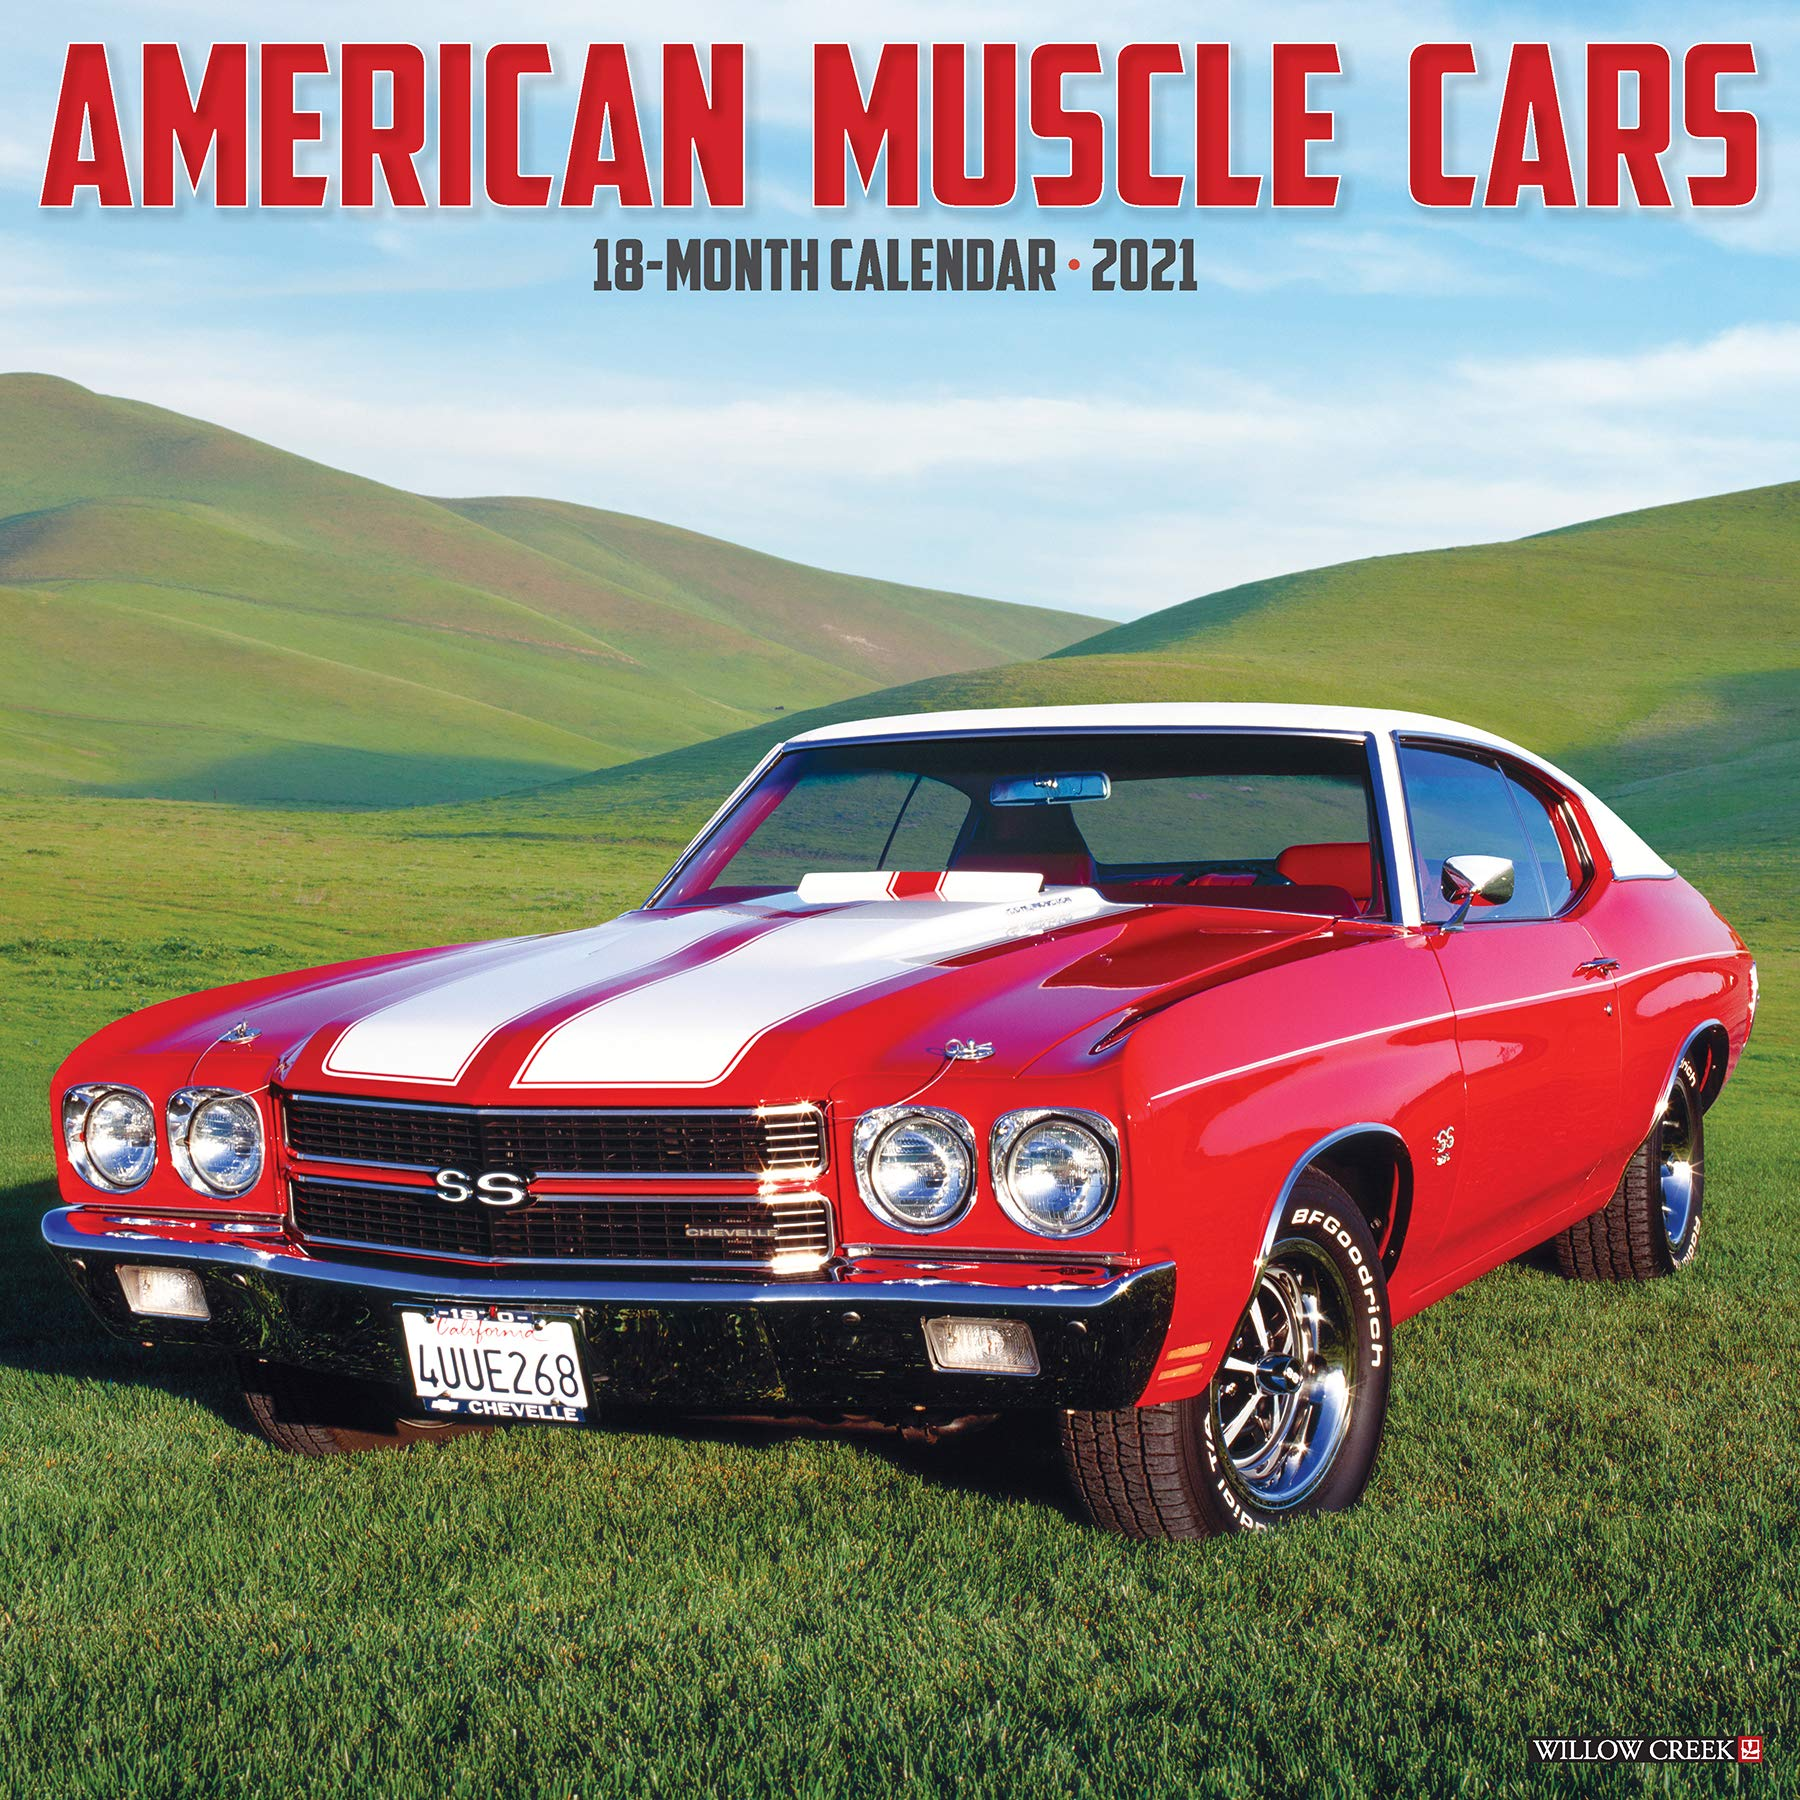 American Muscle Cars 2021 Wall Calendar: Willow Creek Press